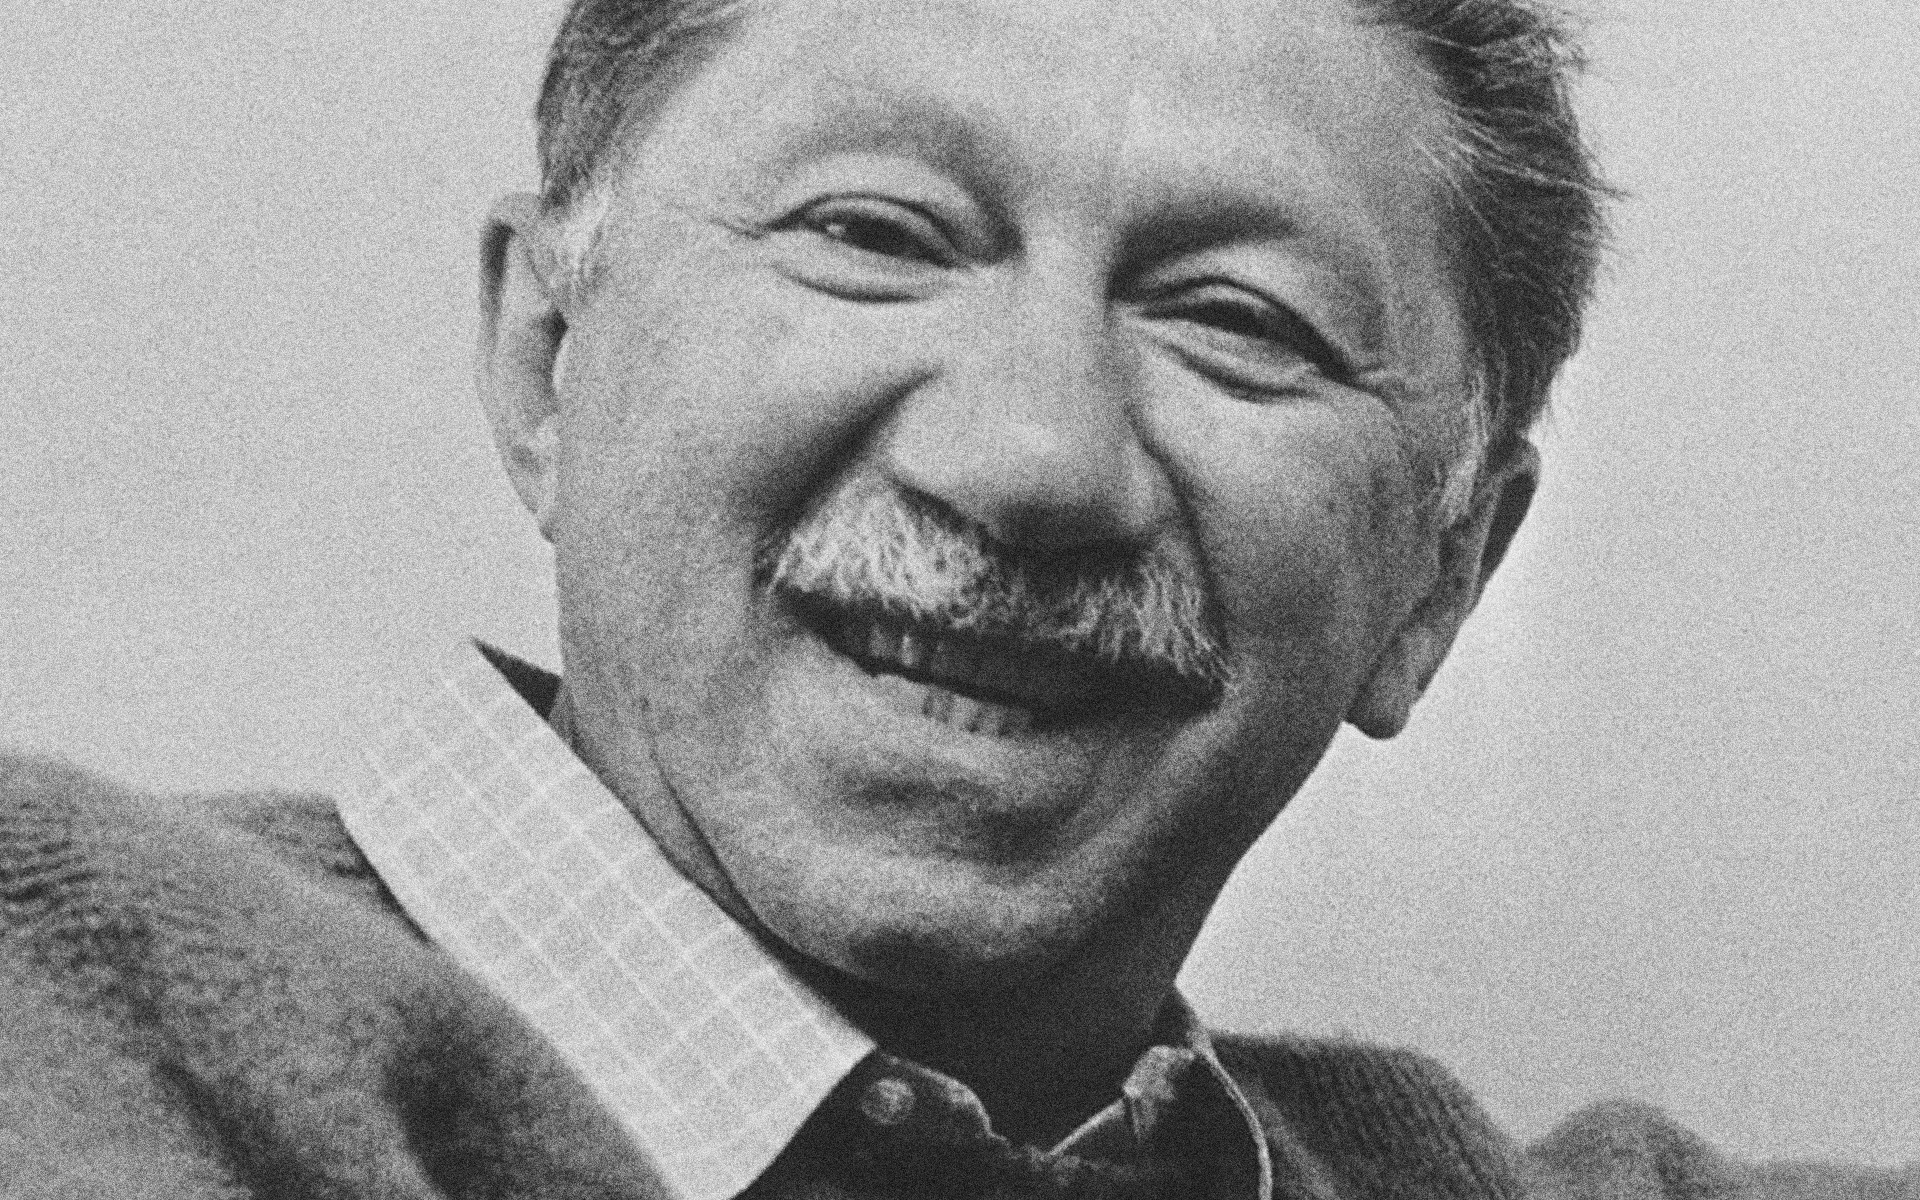 """The 'good' or healthy society would then be defined as one that permitted man's highest purposes to emerge by satisfying all his prepotent basic needs."" Abraham Maslow"